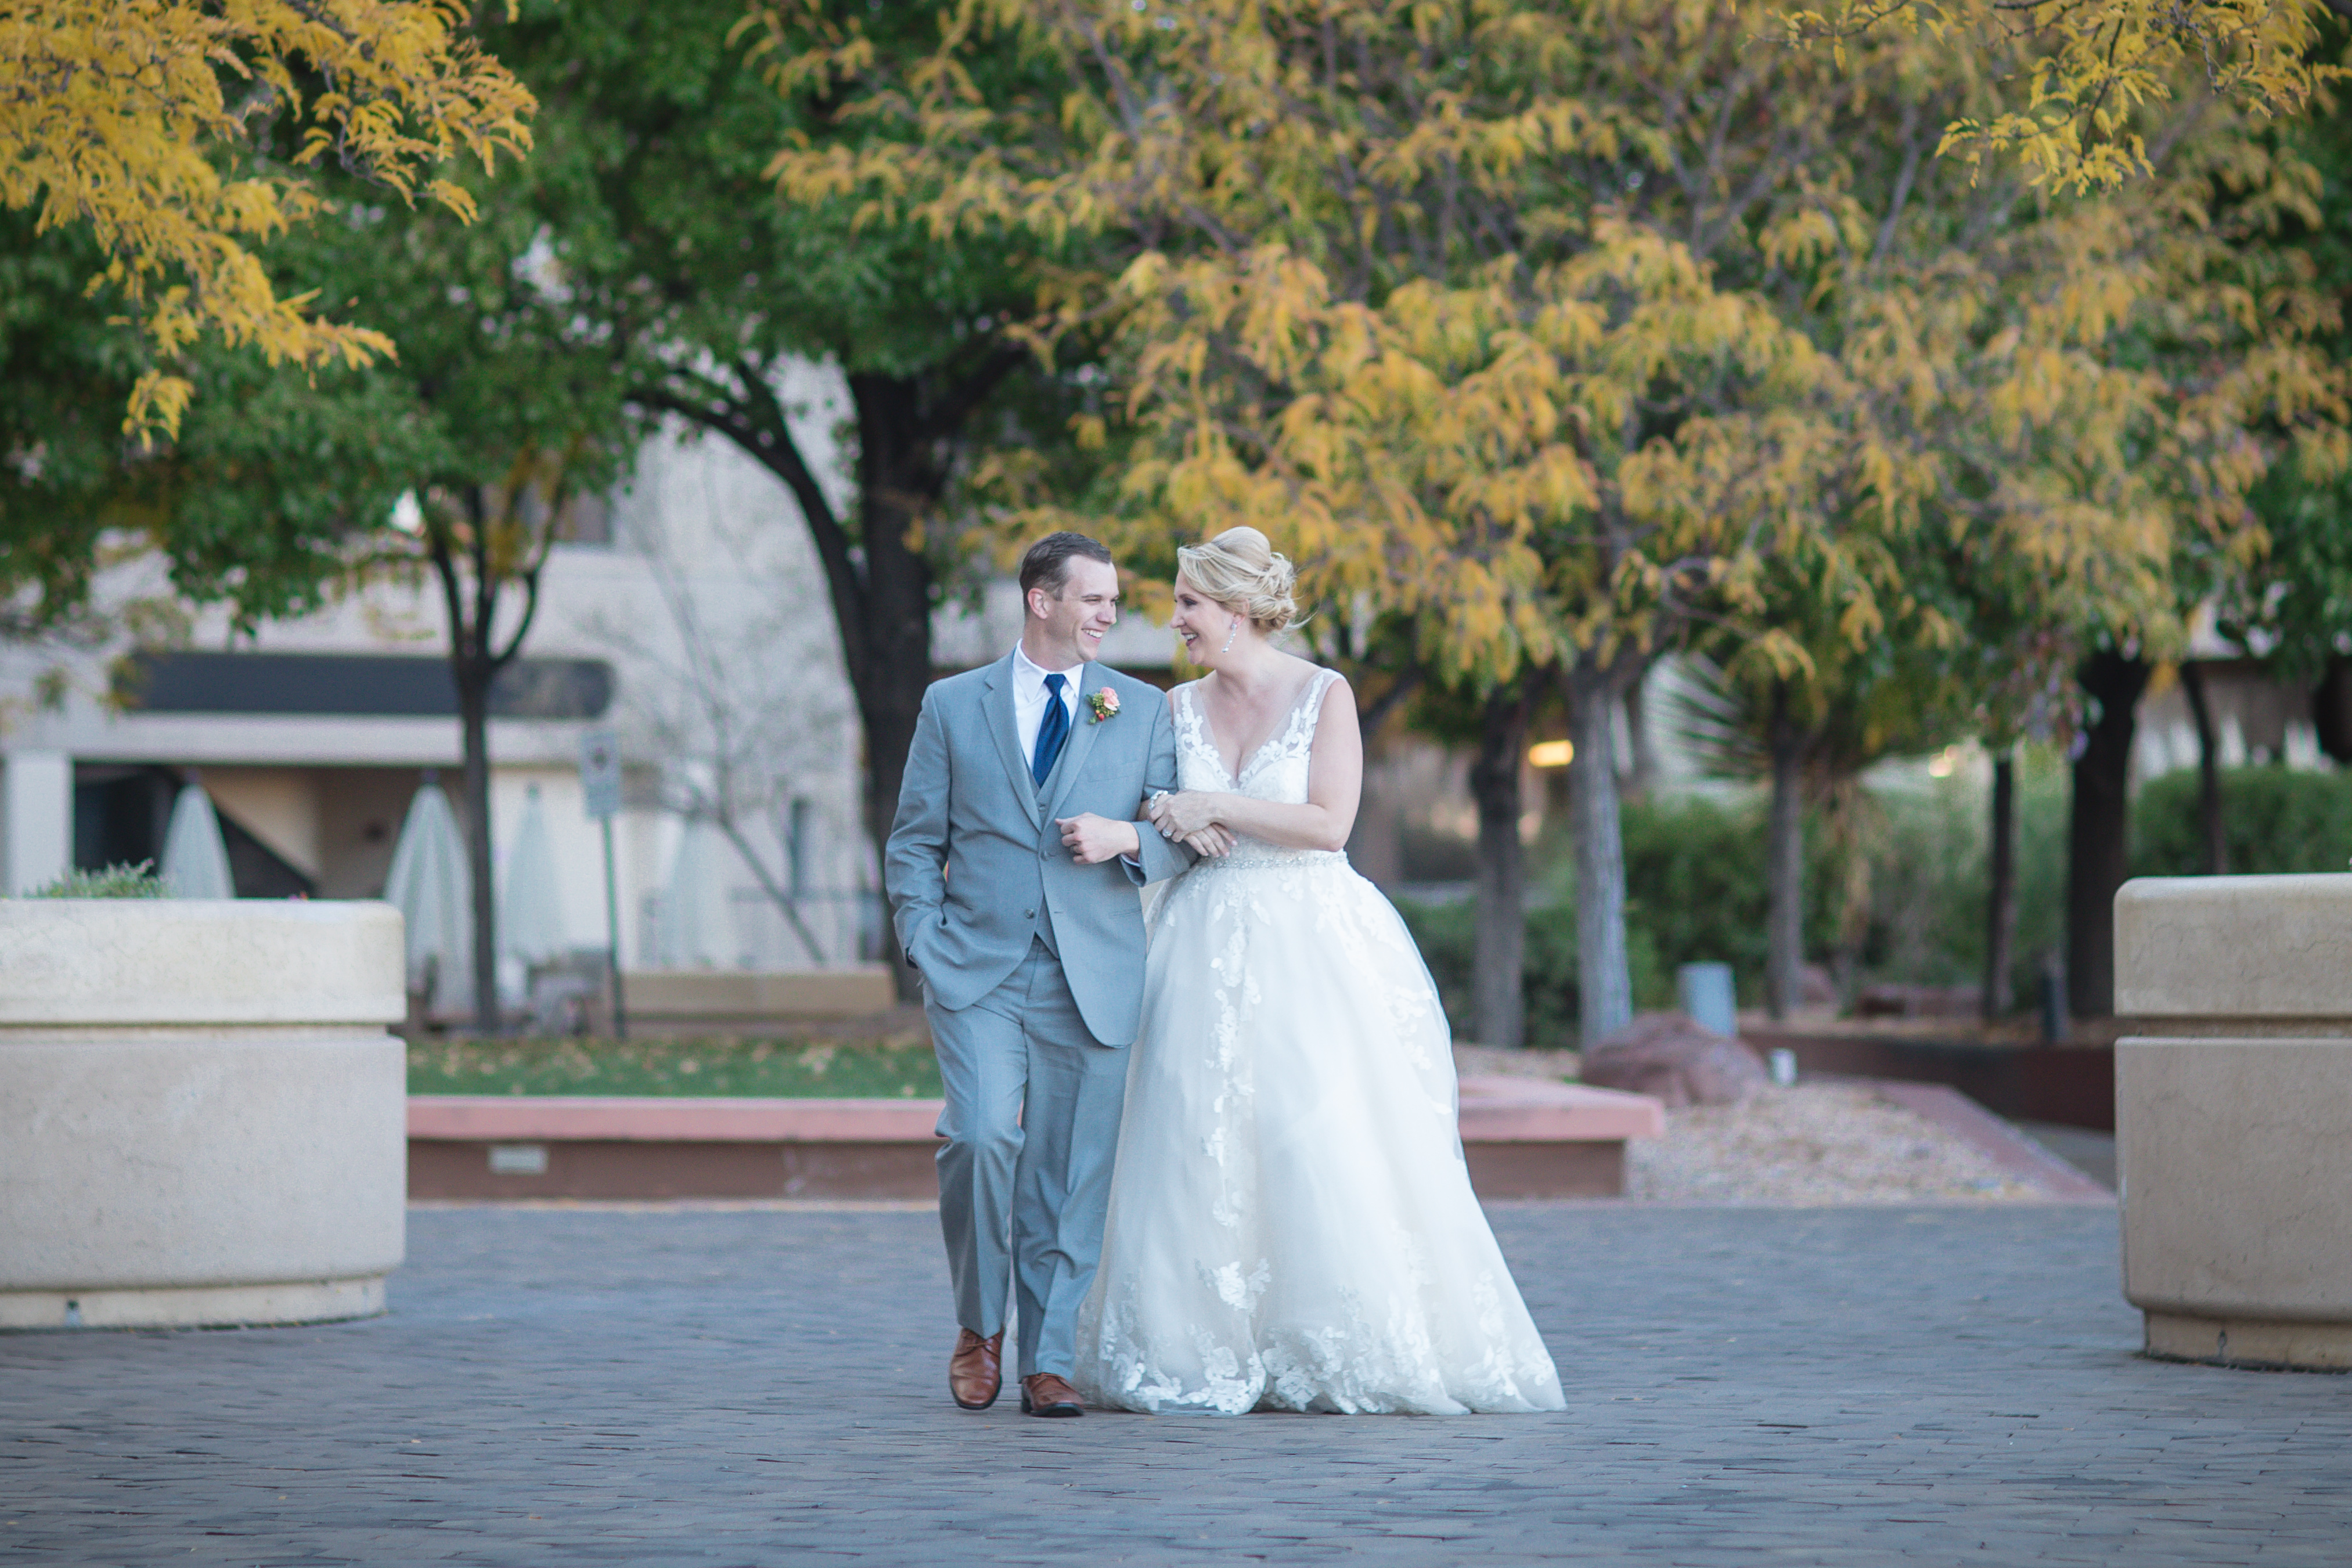 Perfect Wedding Guide local vendors Albuquerque Santa Fe New Mexico planning inspo inspiration ceremony tips real wedding couple photography PWG Elite Awards contest competition vote now outdoor marriage engagement